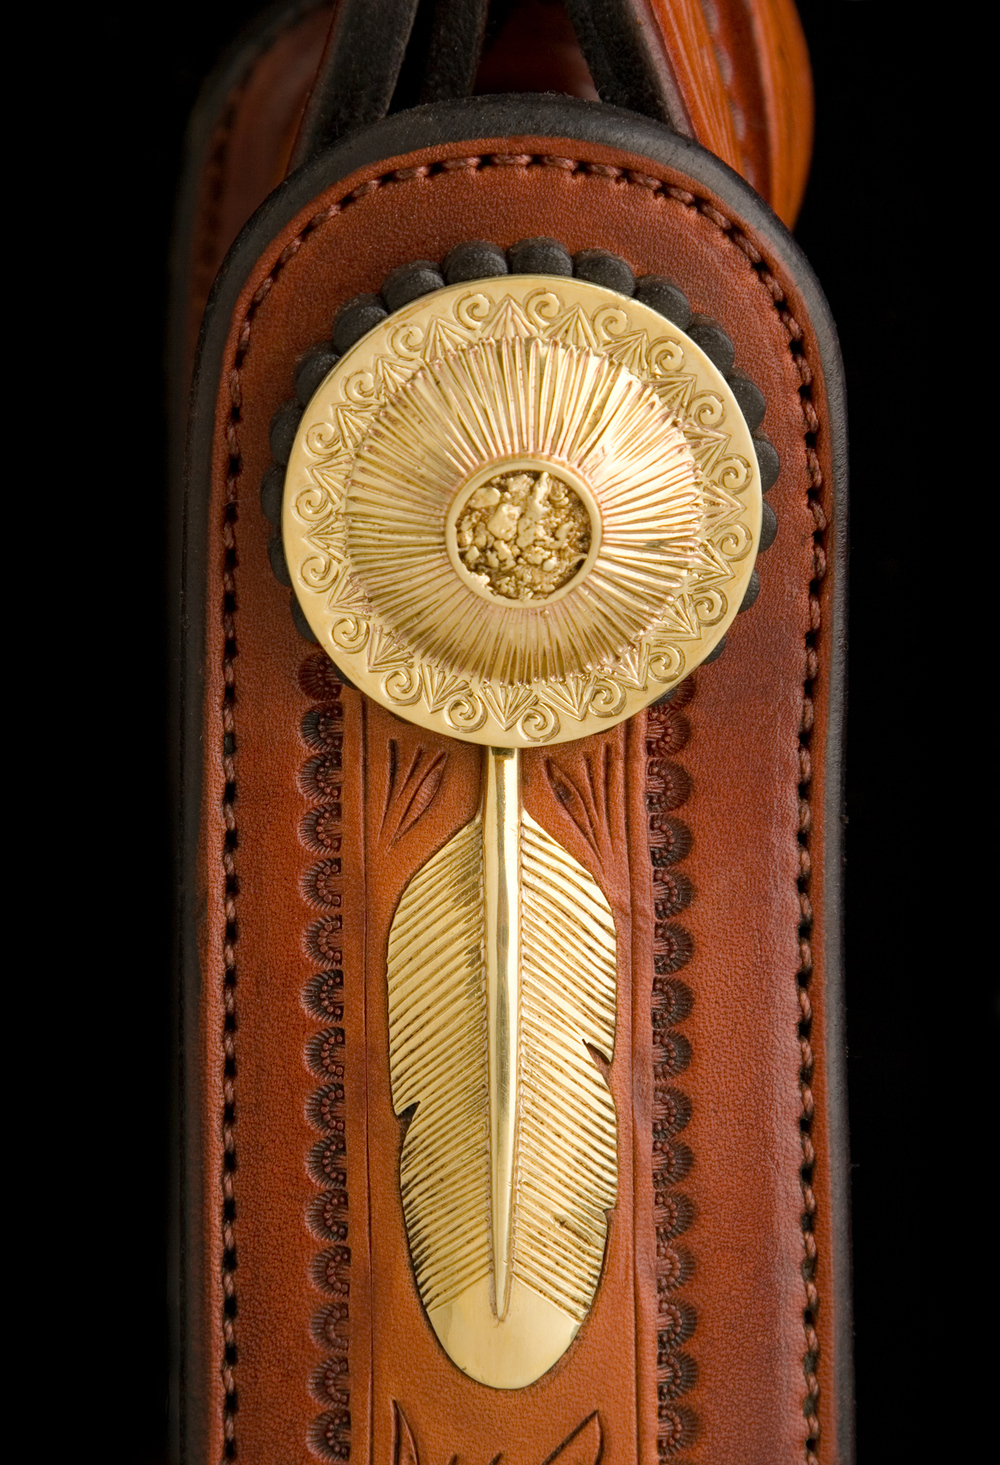 Gold Nugget Saddle